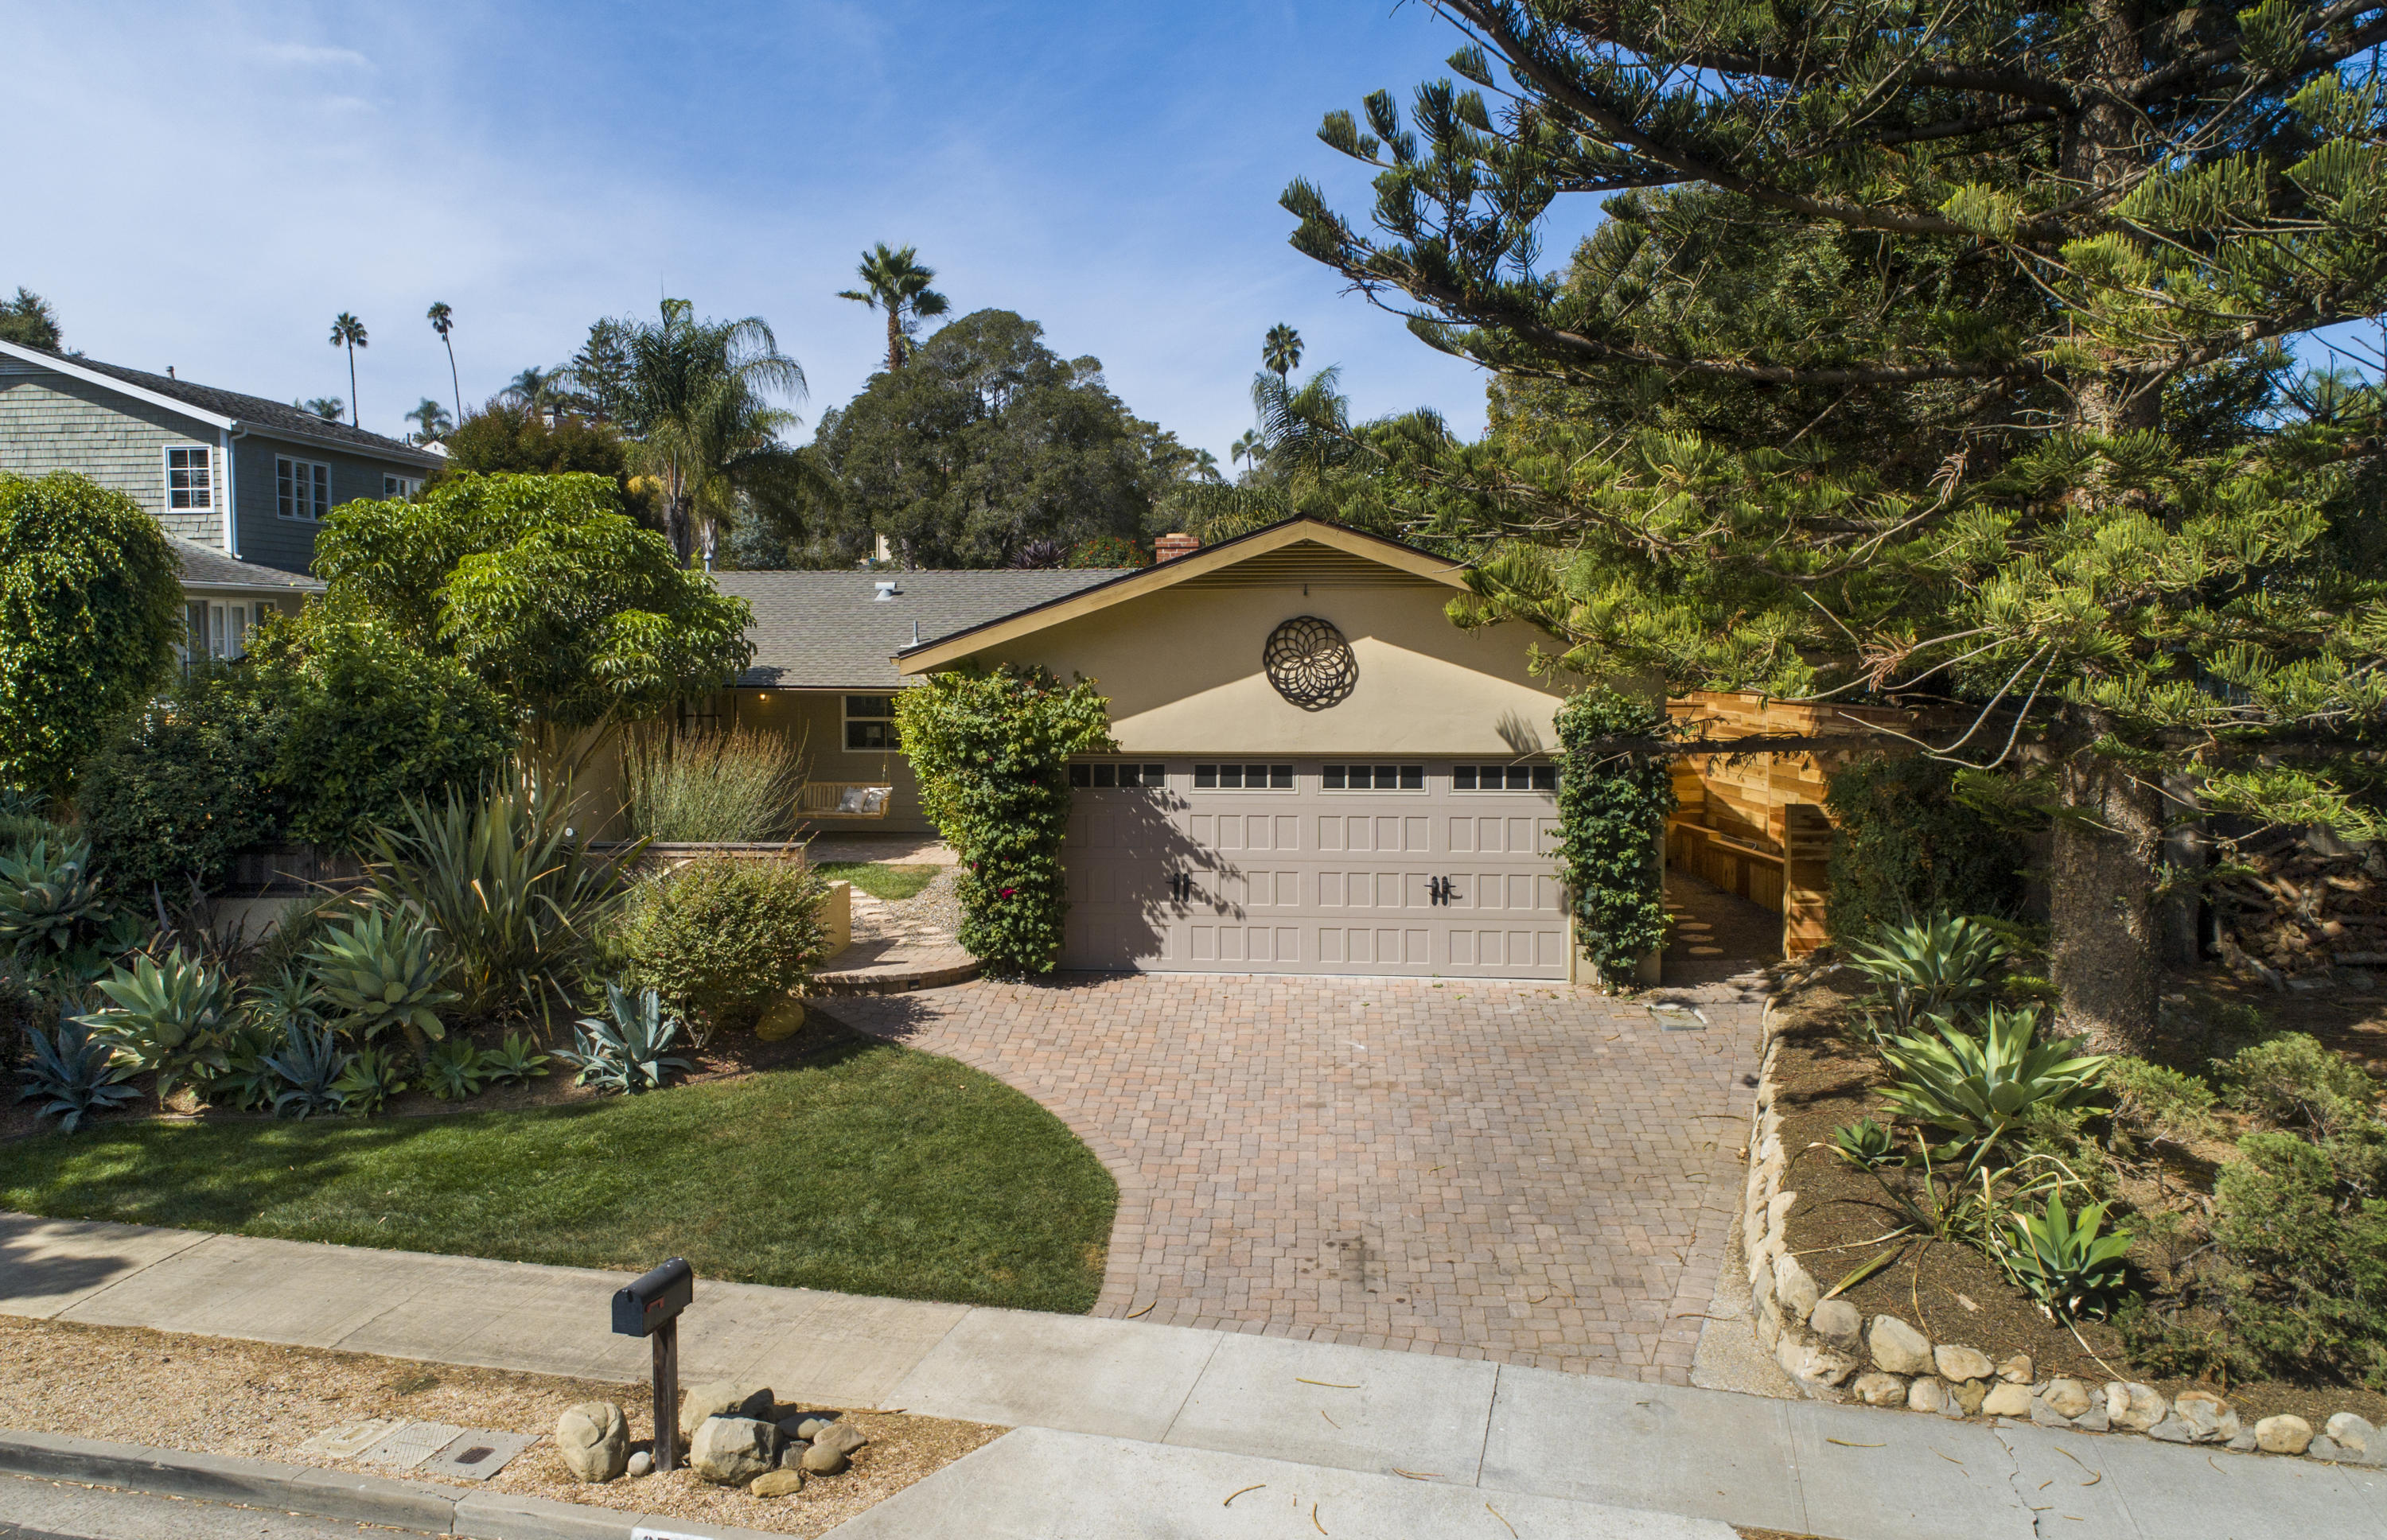 Property photo for 2749 Vernon Rd Santa Barbara, California 93105 - 18-3523